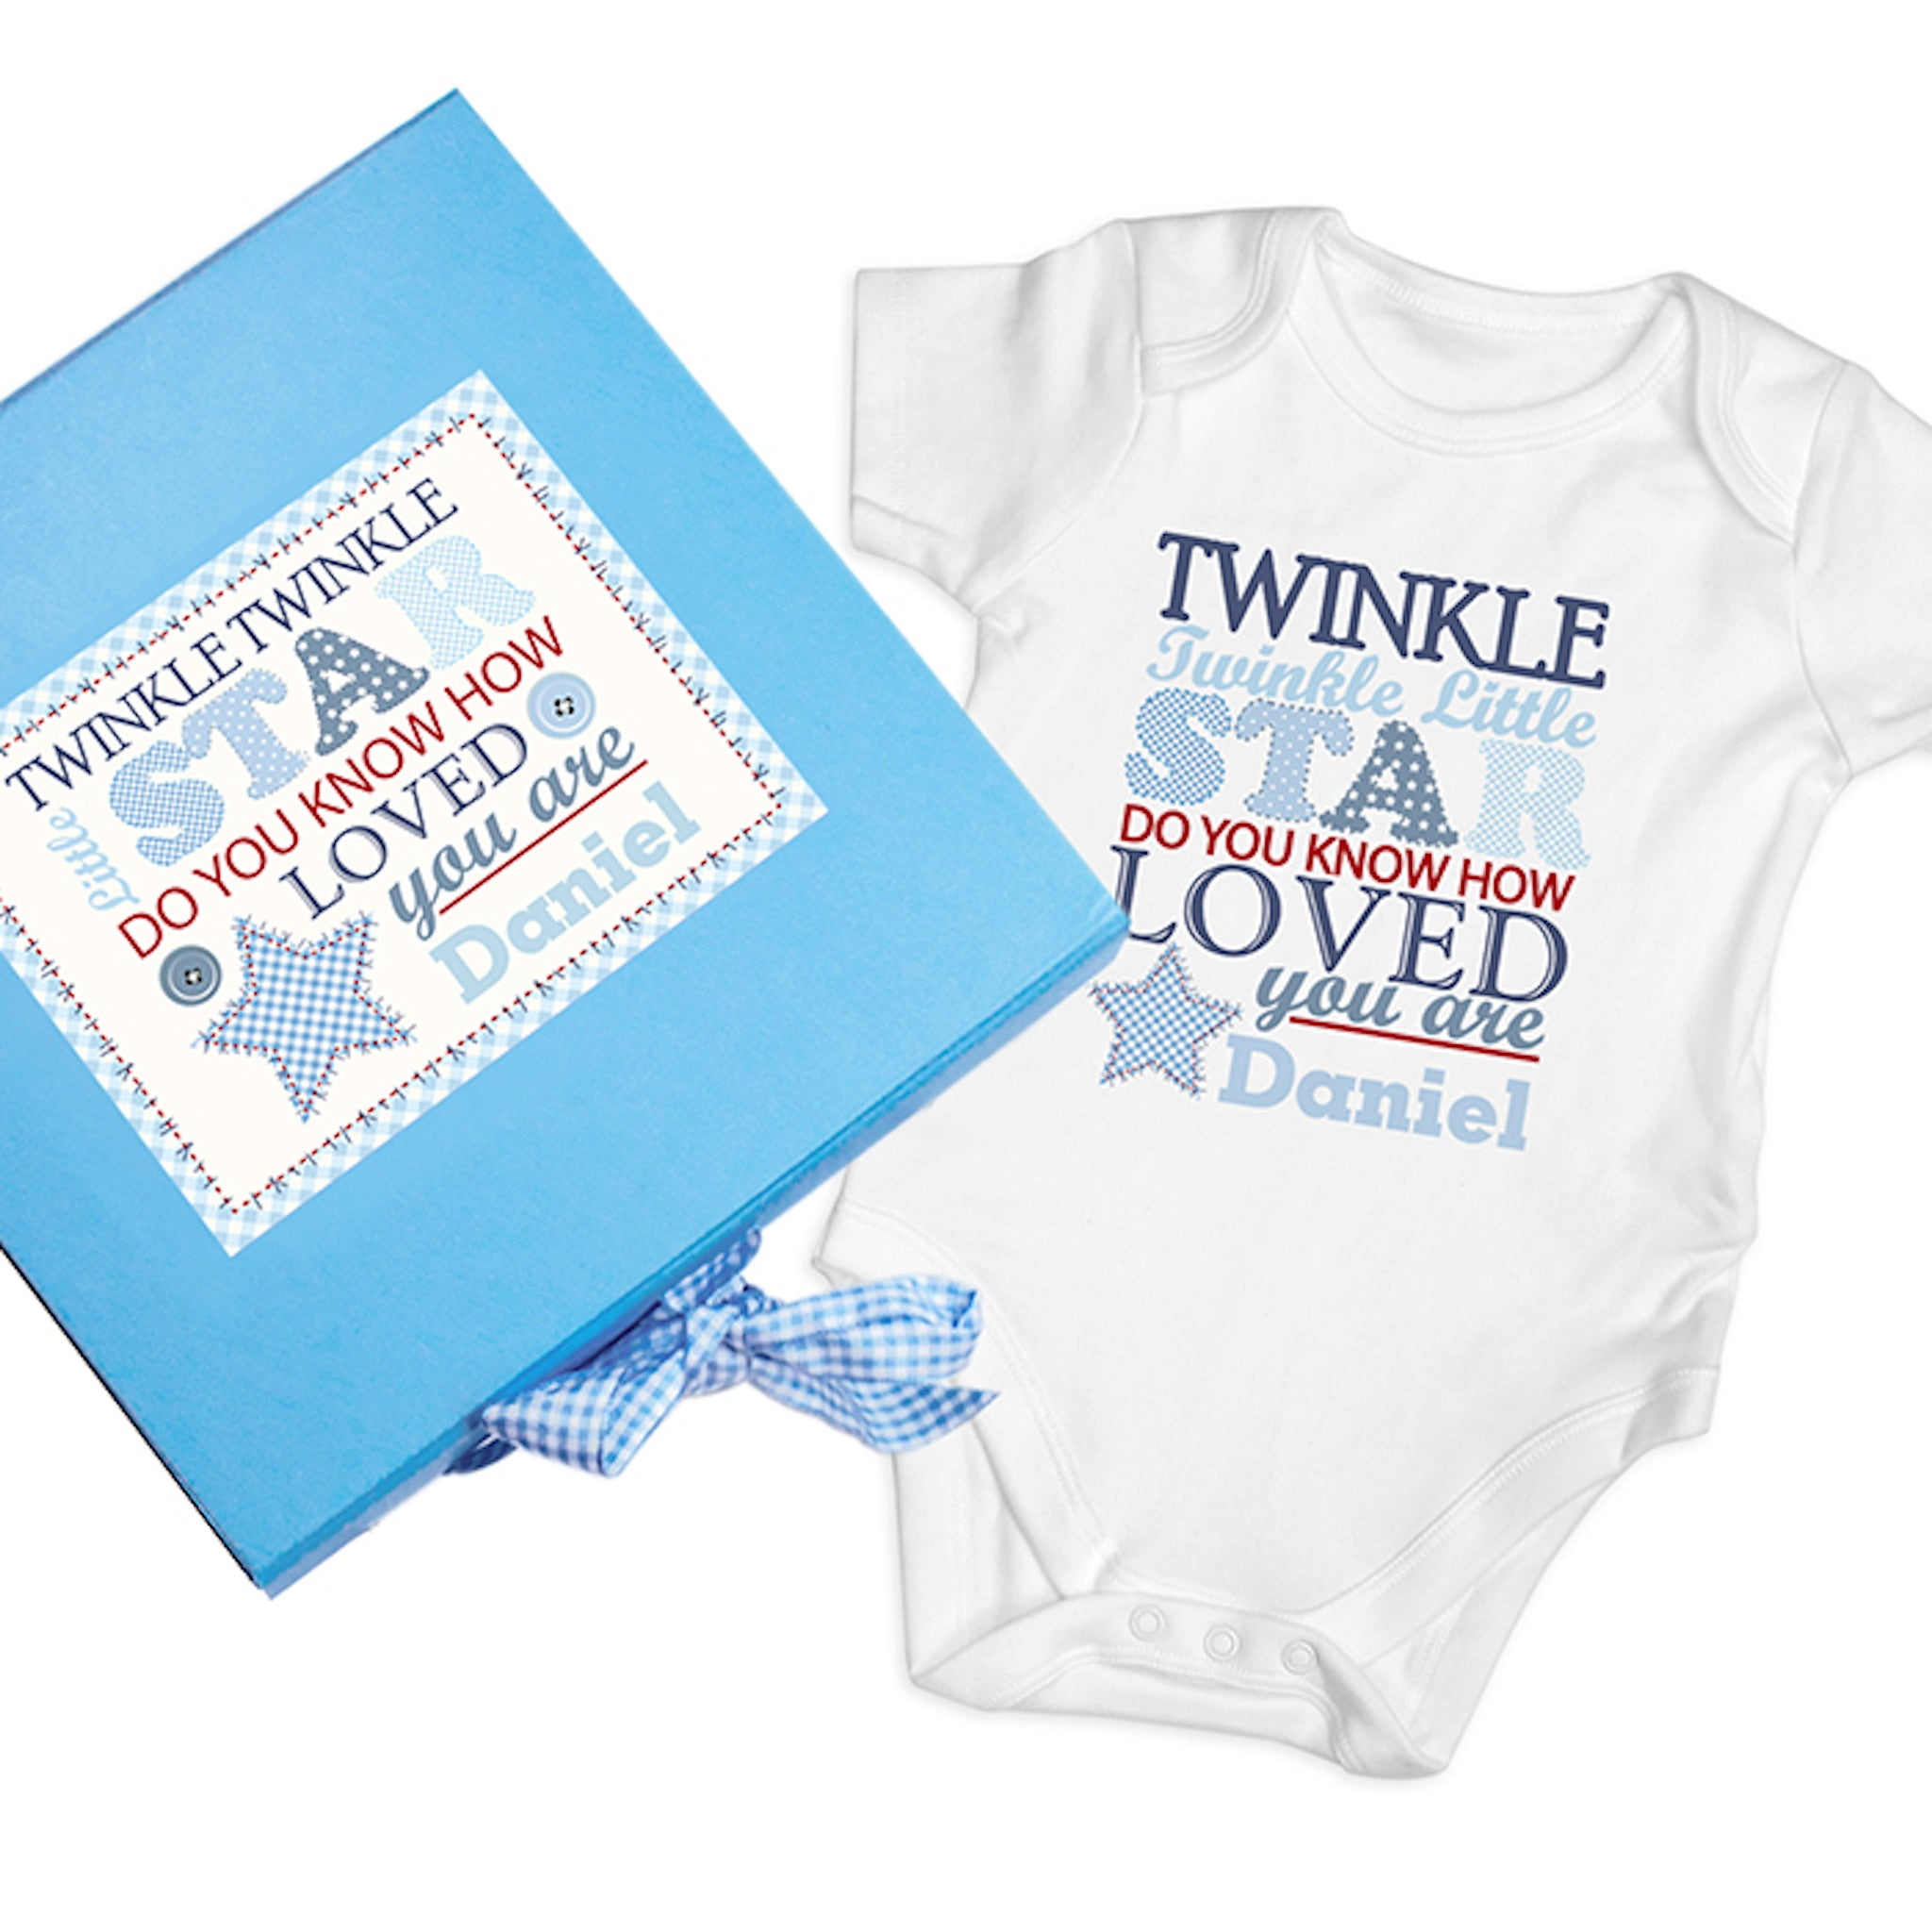 Baby boy gift boxes baby boy gift hampers baby boy shower gifts twinkle twinkle baby boy gift set personalised baby gift negle